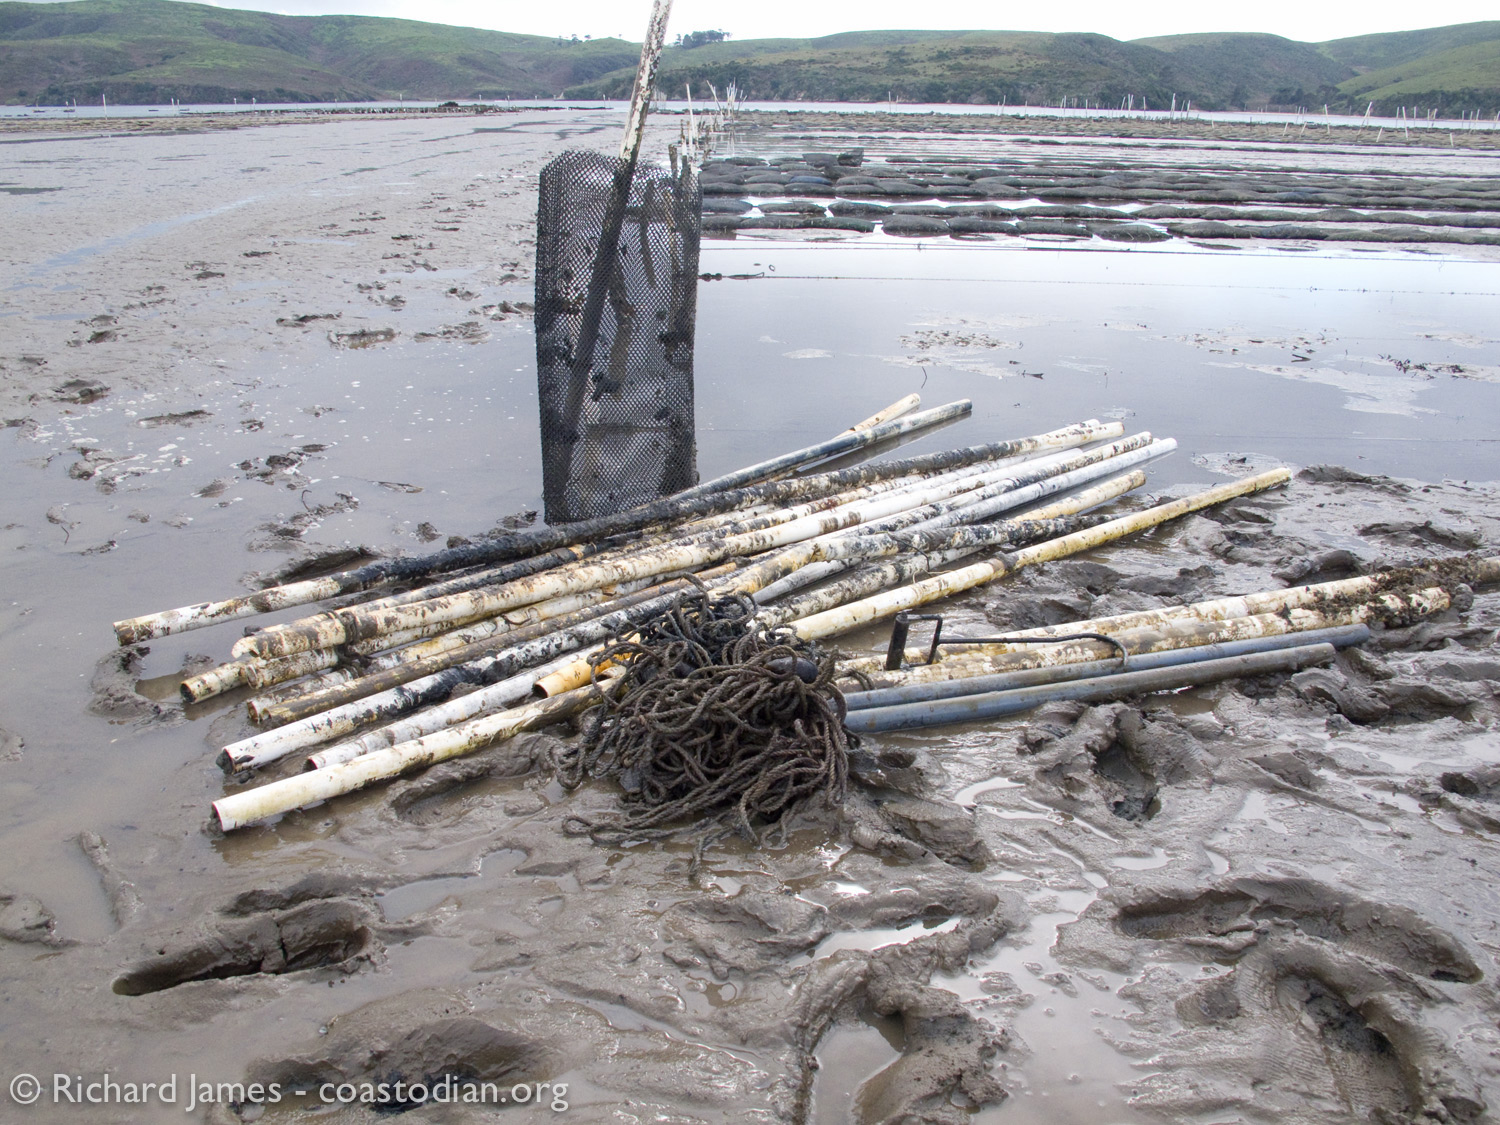 PVC pipe, grow-out bag and rope collected on or near the Tomales Bay Oyster Company lease